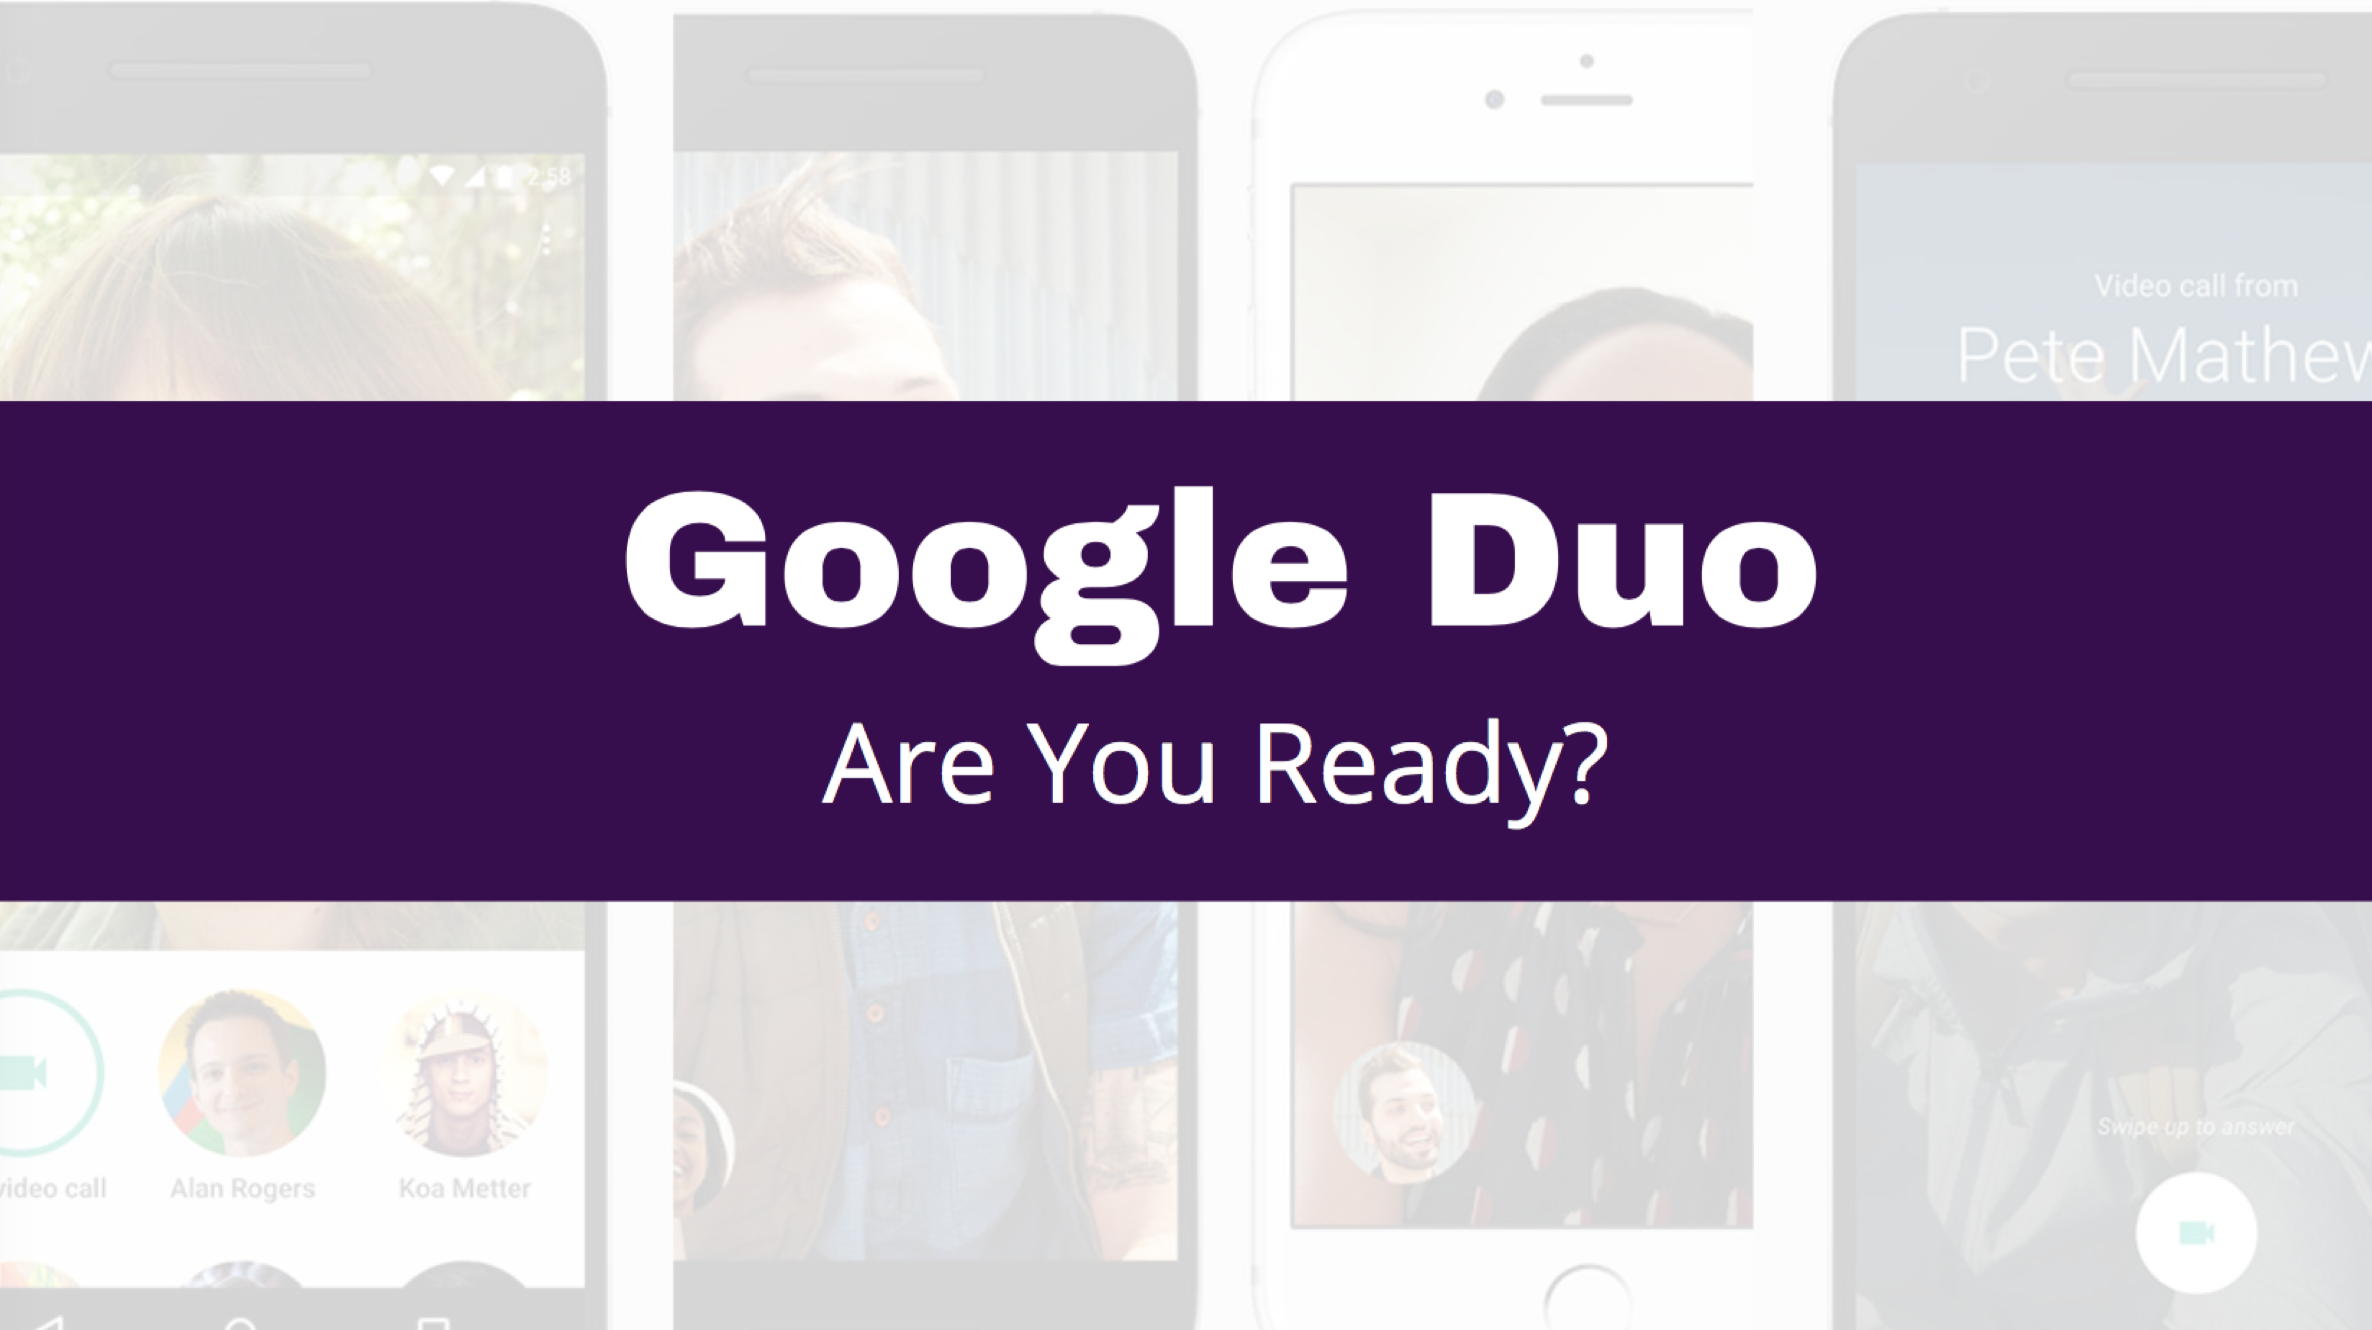 Are You Ready for Google Duo?